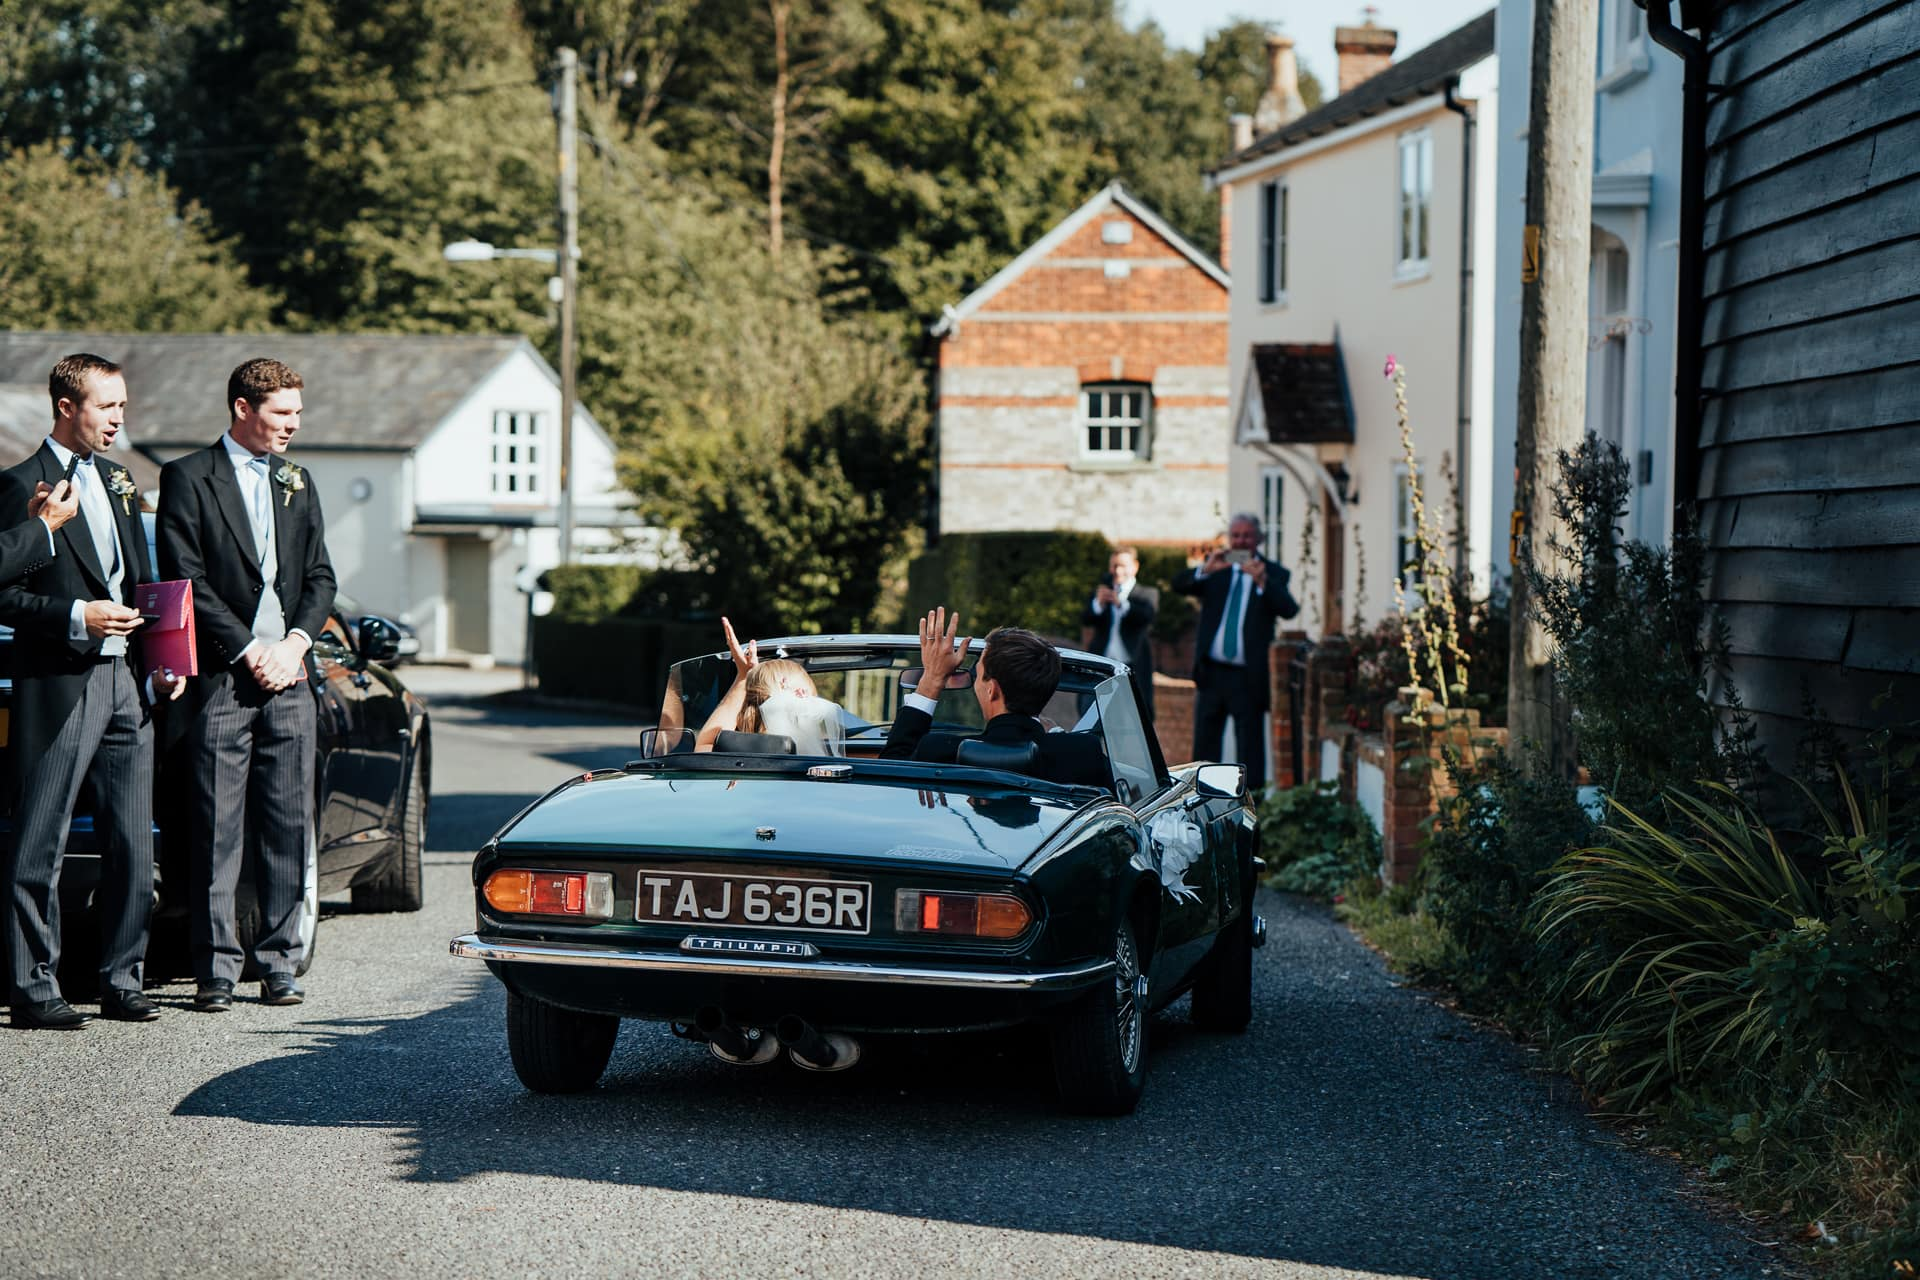 Bride and Groom wave goodbye to their guests in a vintage Triumph car